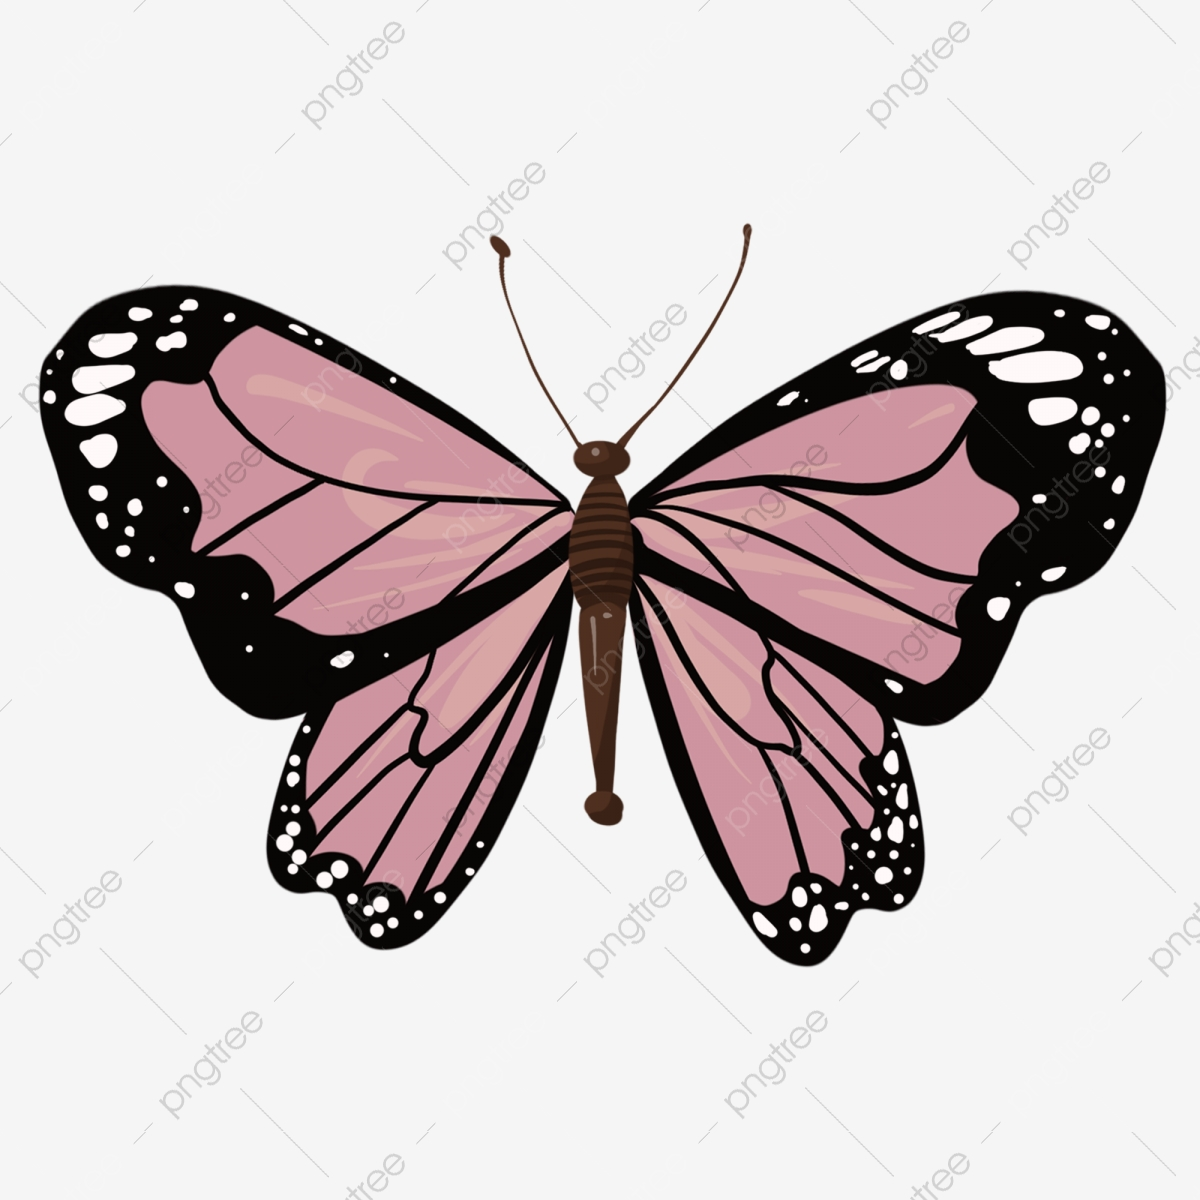 Beautiful Black Purple Butterfly Black Purple Butterfly Png Transparent Clipart Image And Psd File For Free Download